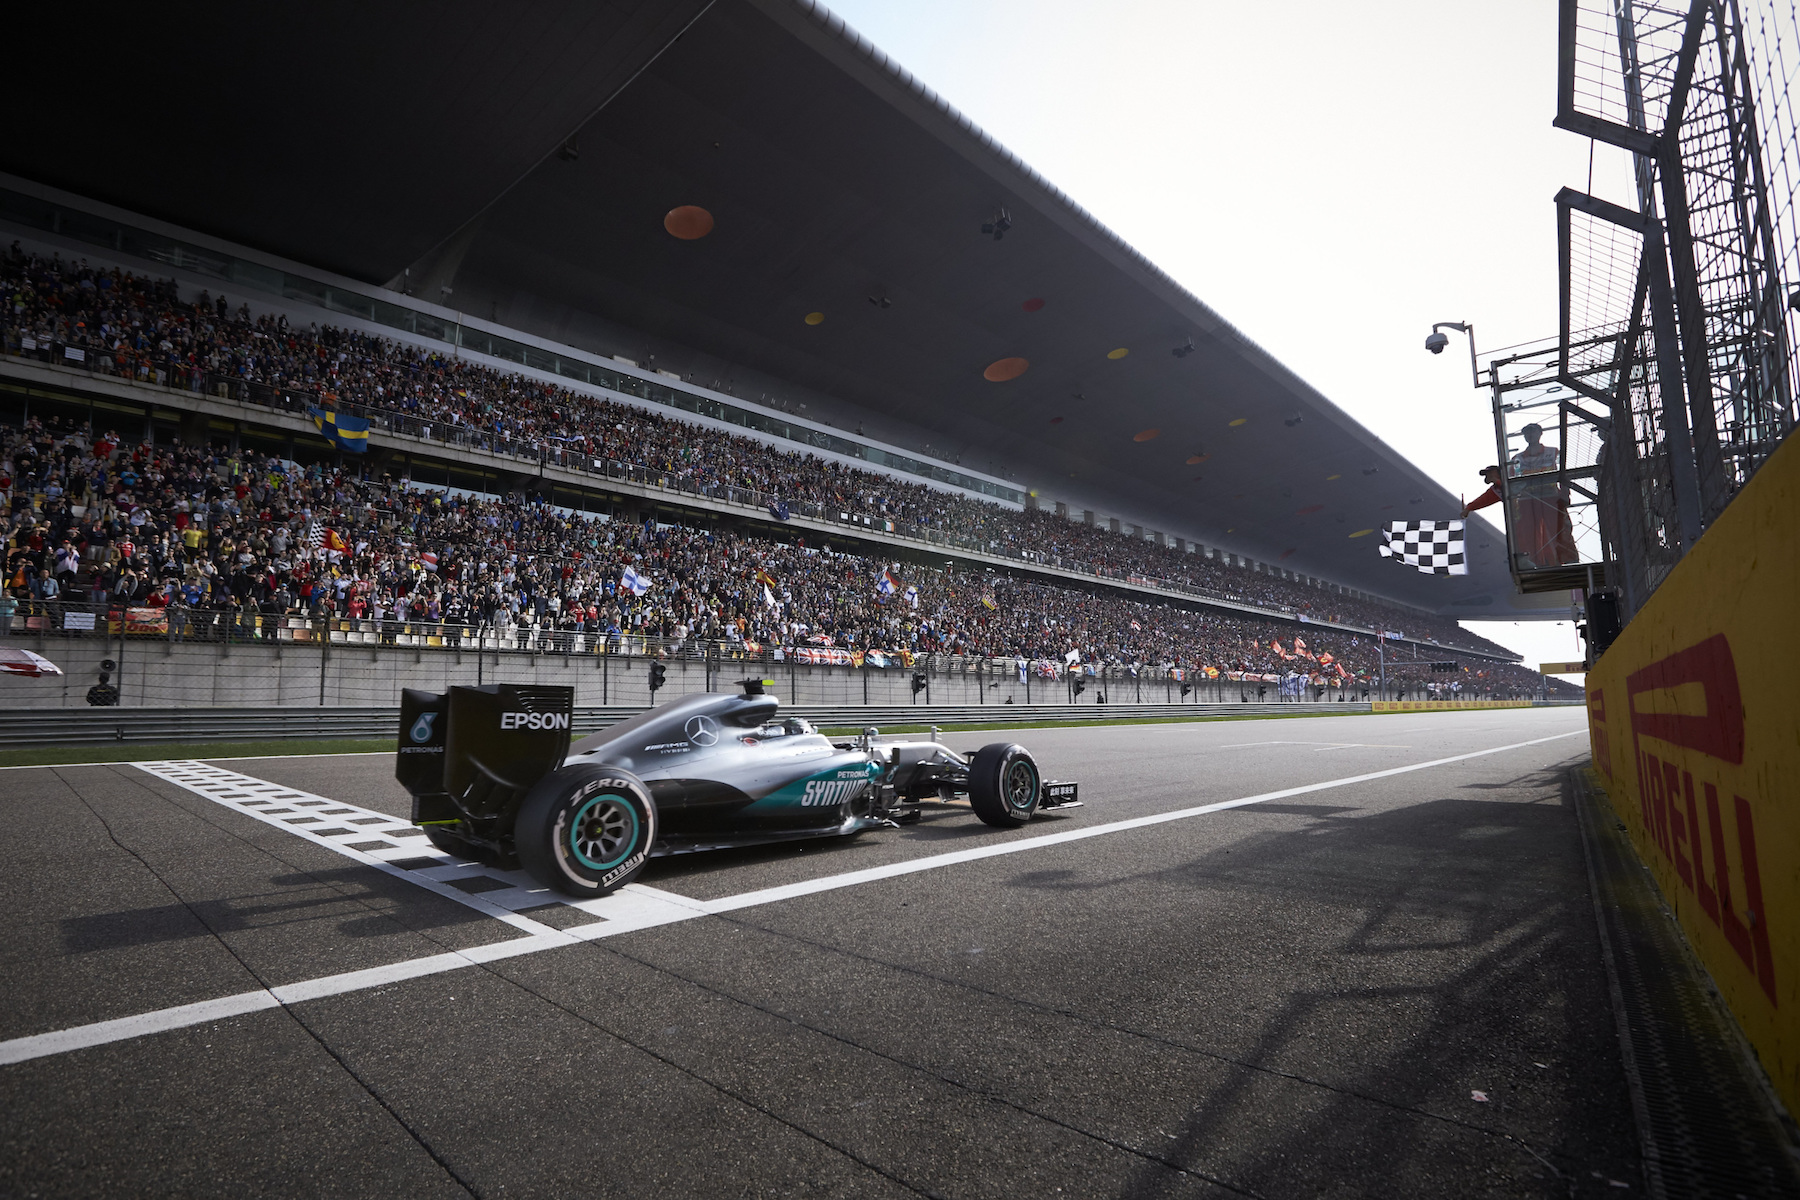 🇨🇳 Chinese Grand Prix winner: 🇩🇪 Nico Rosberg